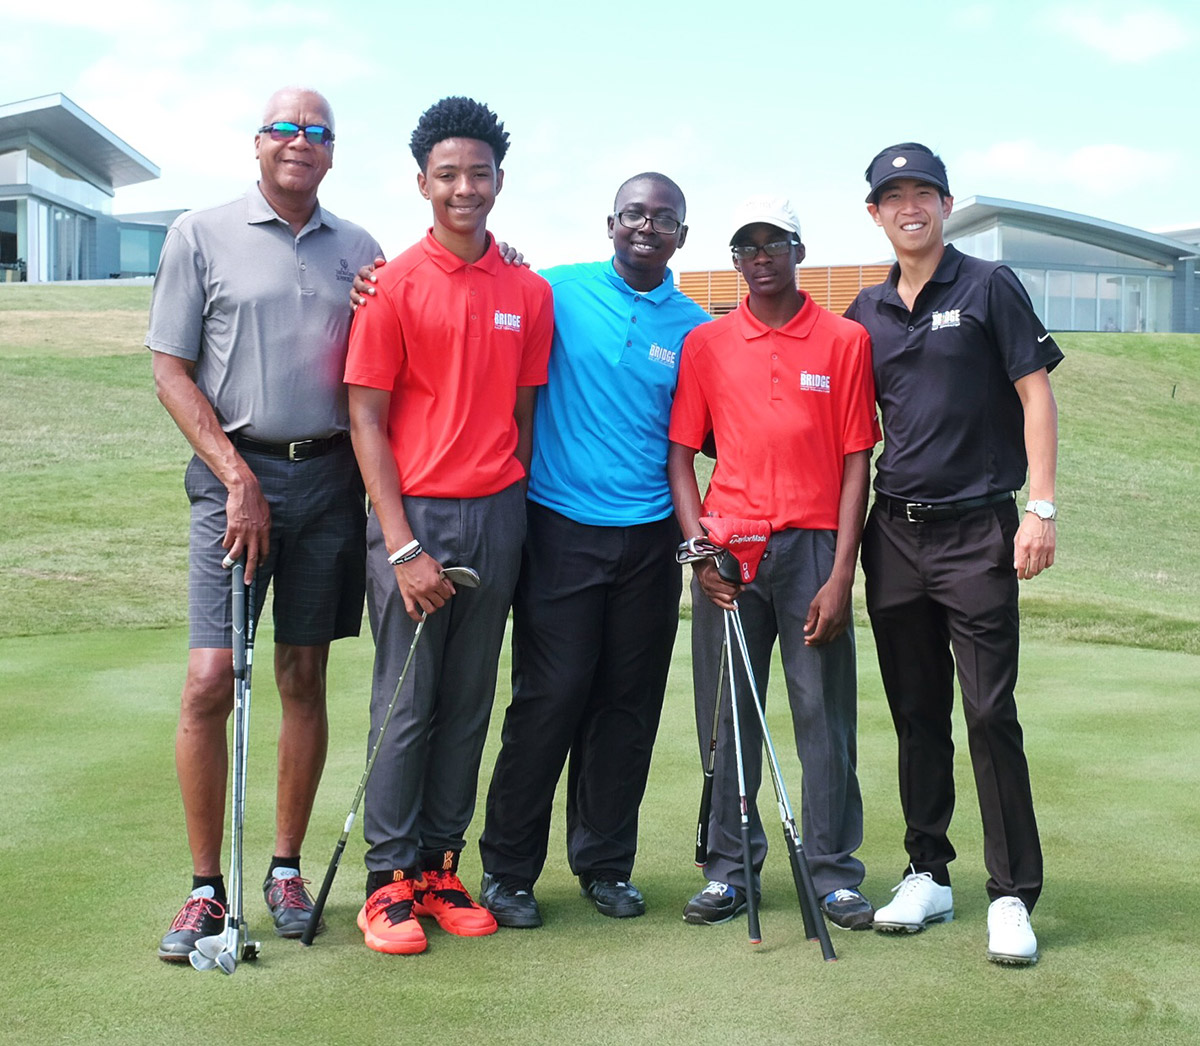 Our Young Men Take On The Wind And A Pro In Par 3 Challenge At The